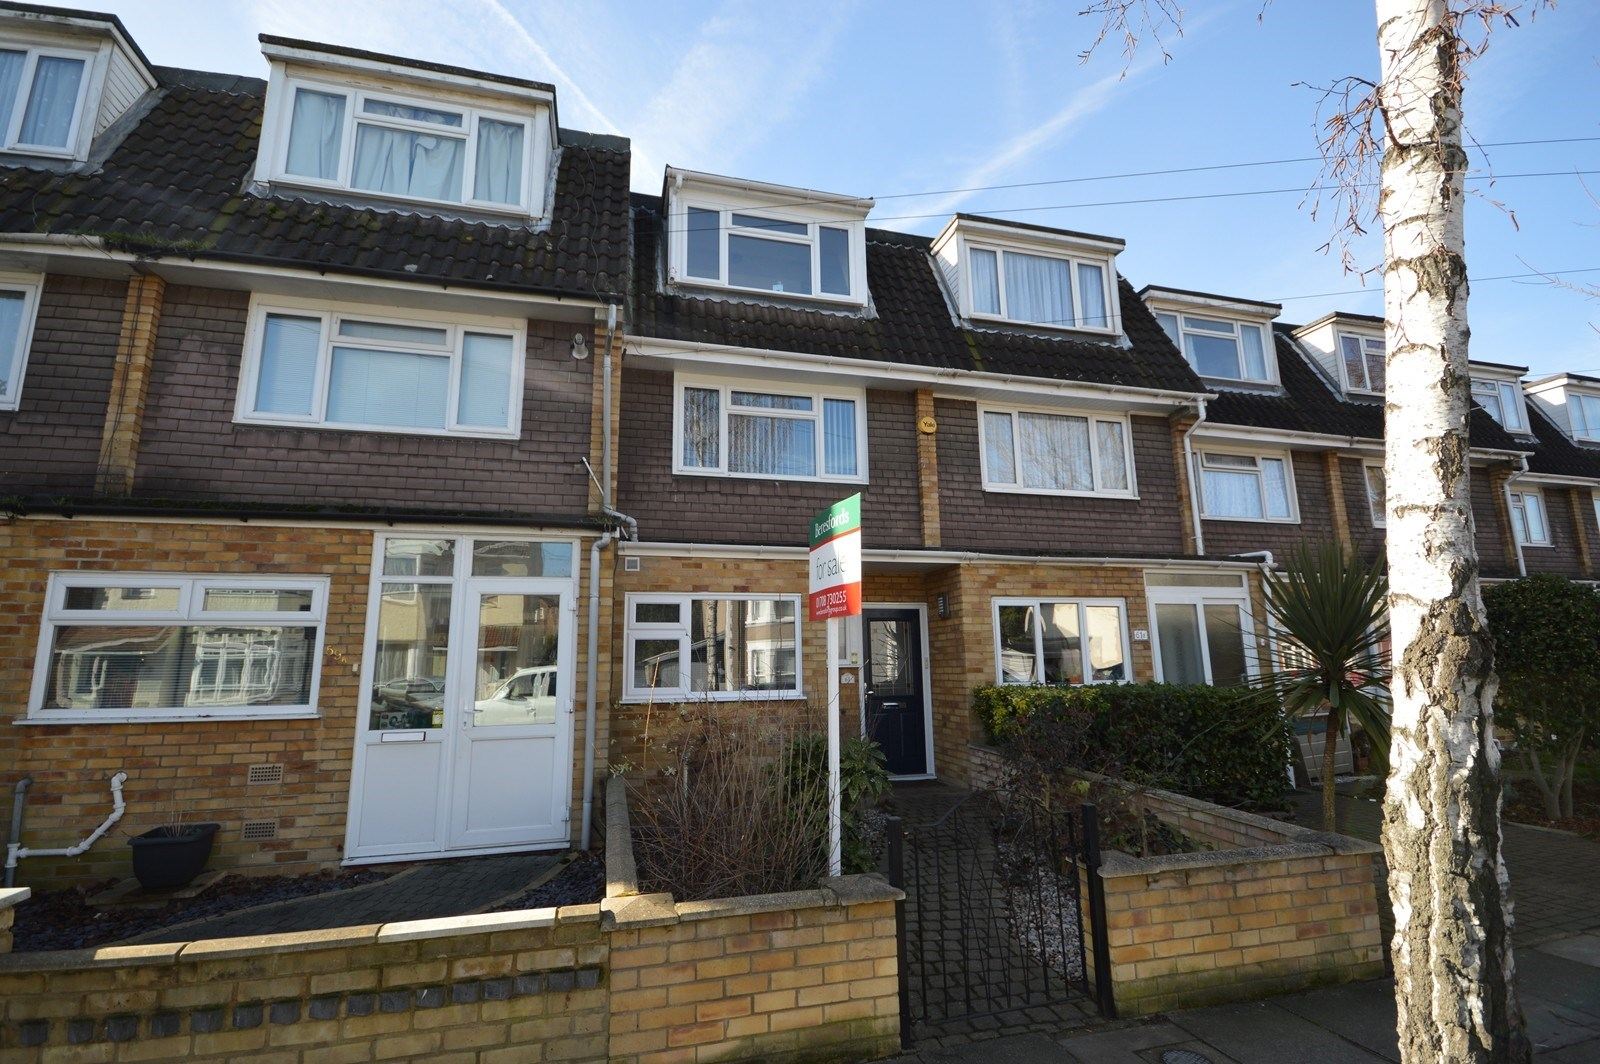 4 Bed Town House Sold In Romford Beresfords